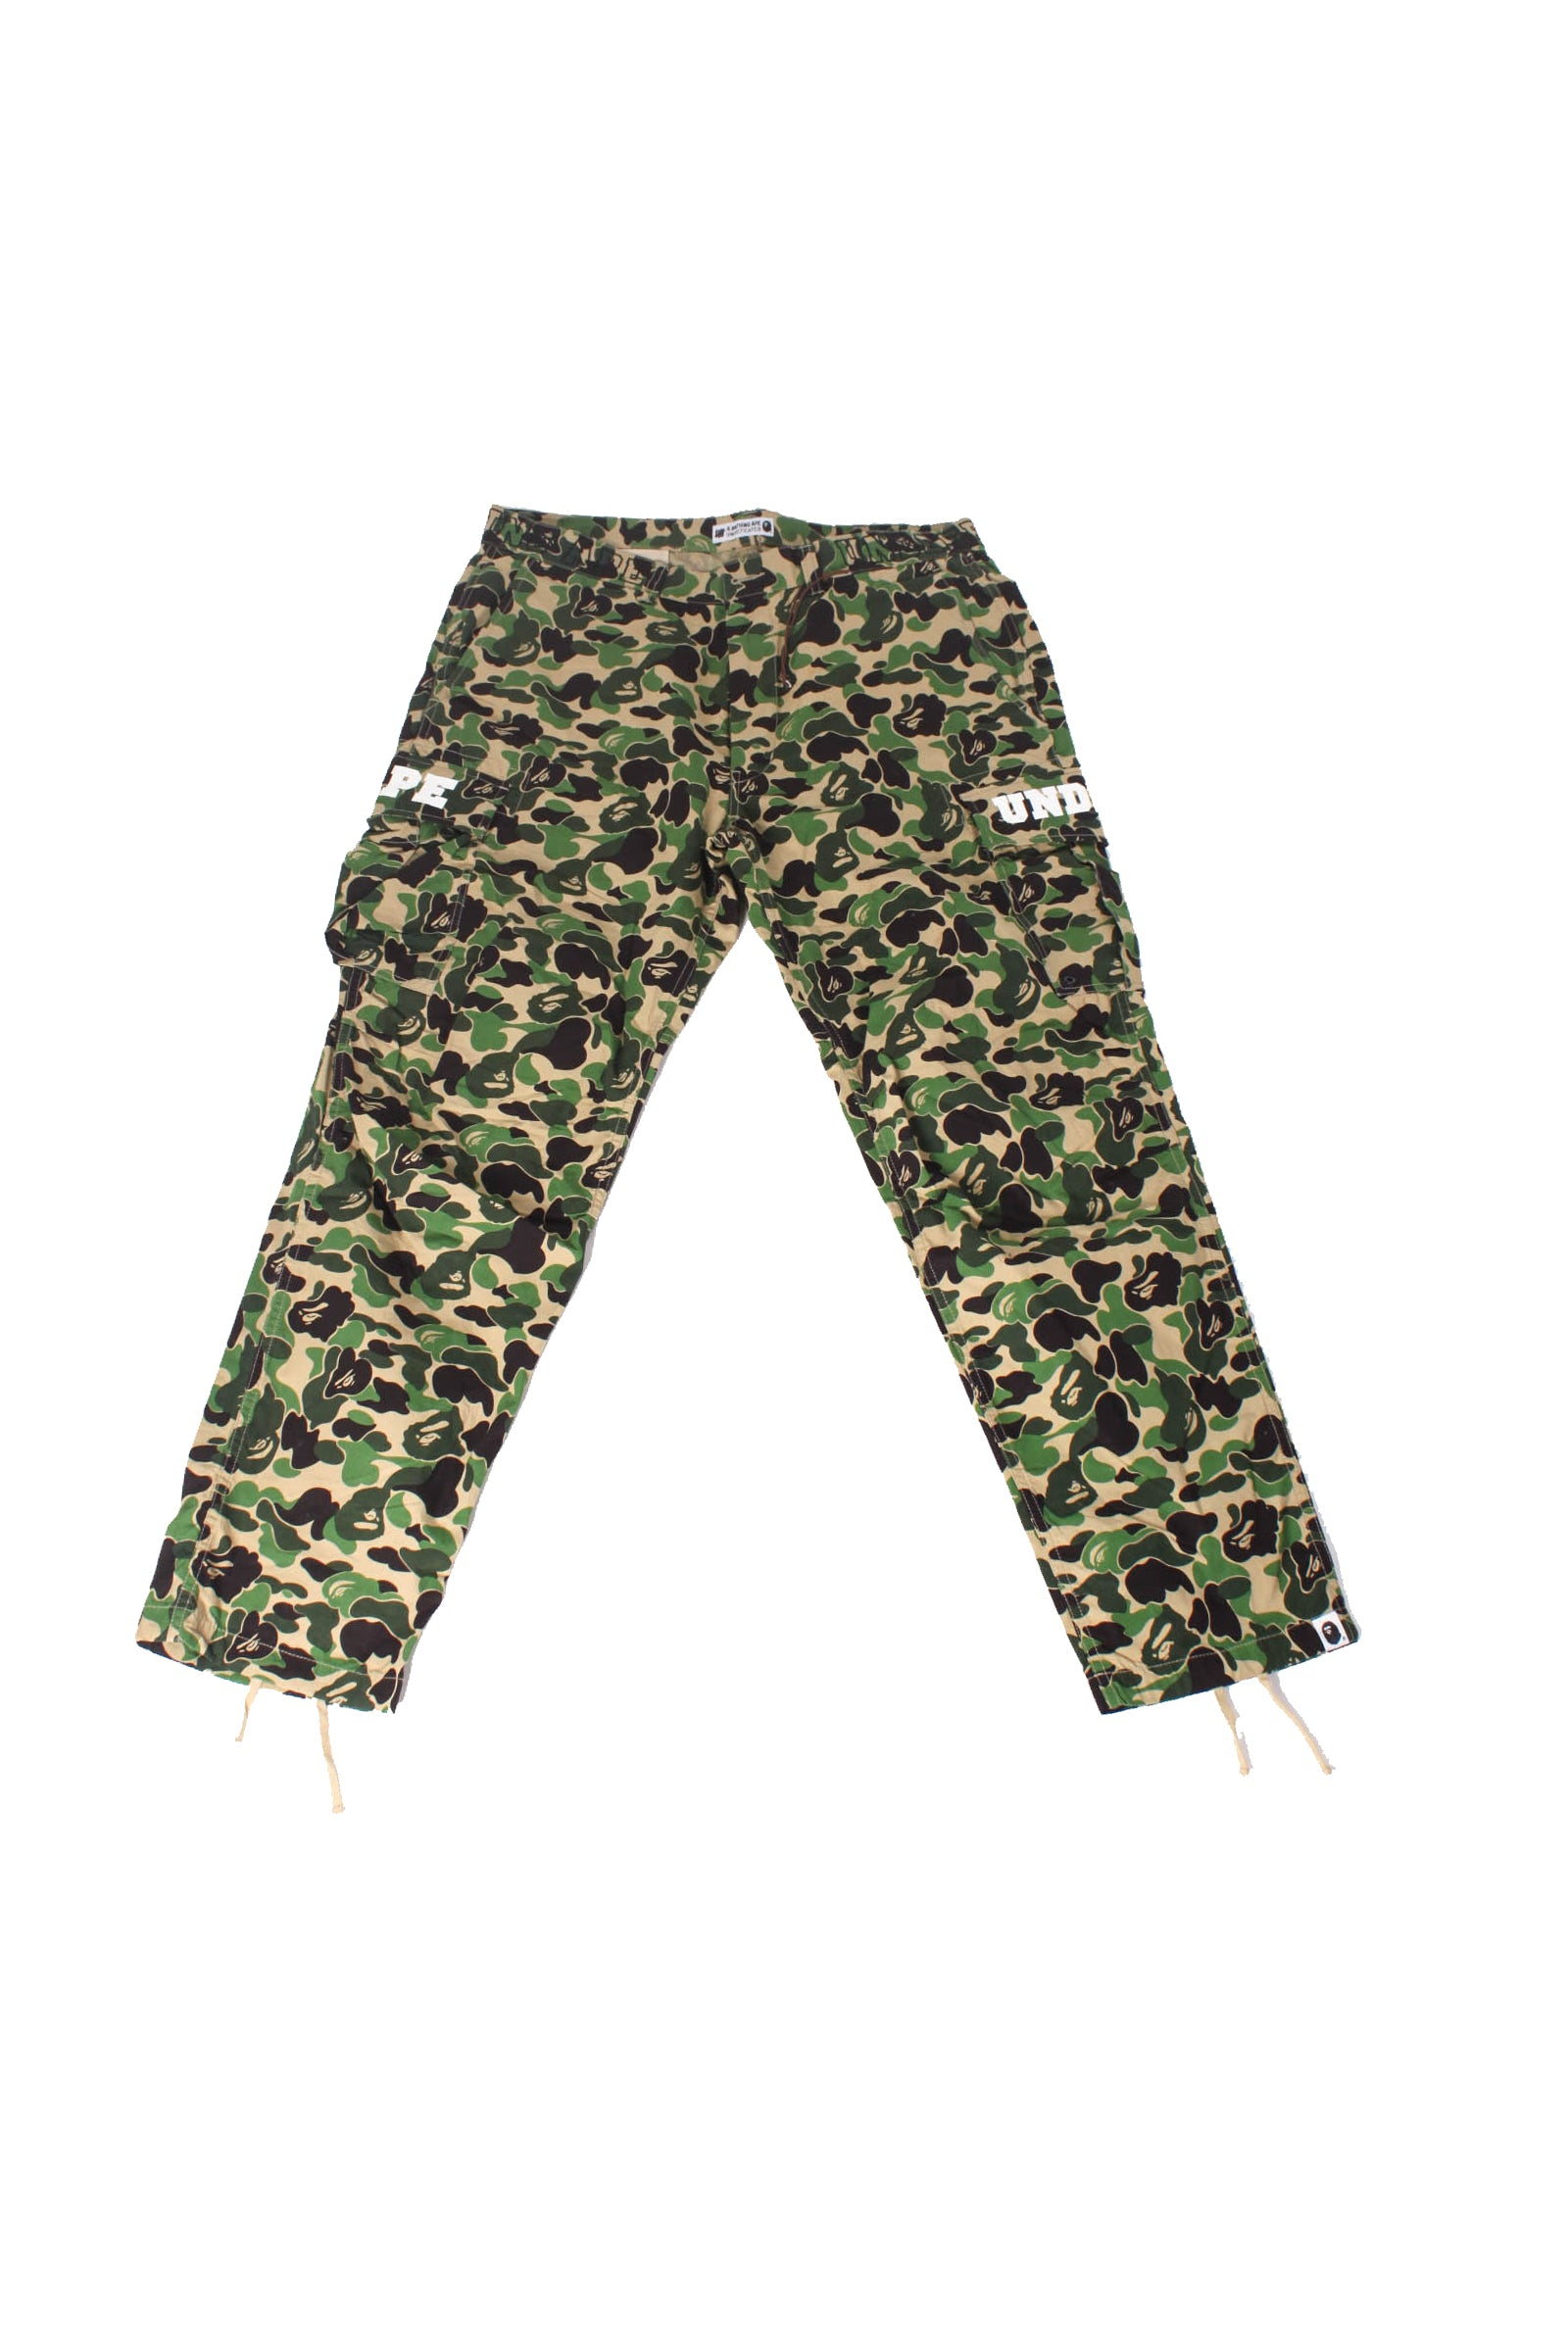 Undefeated Bape Pants